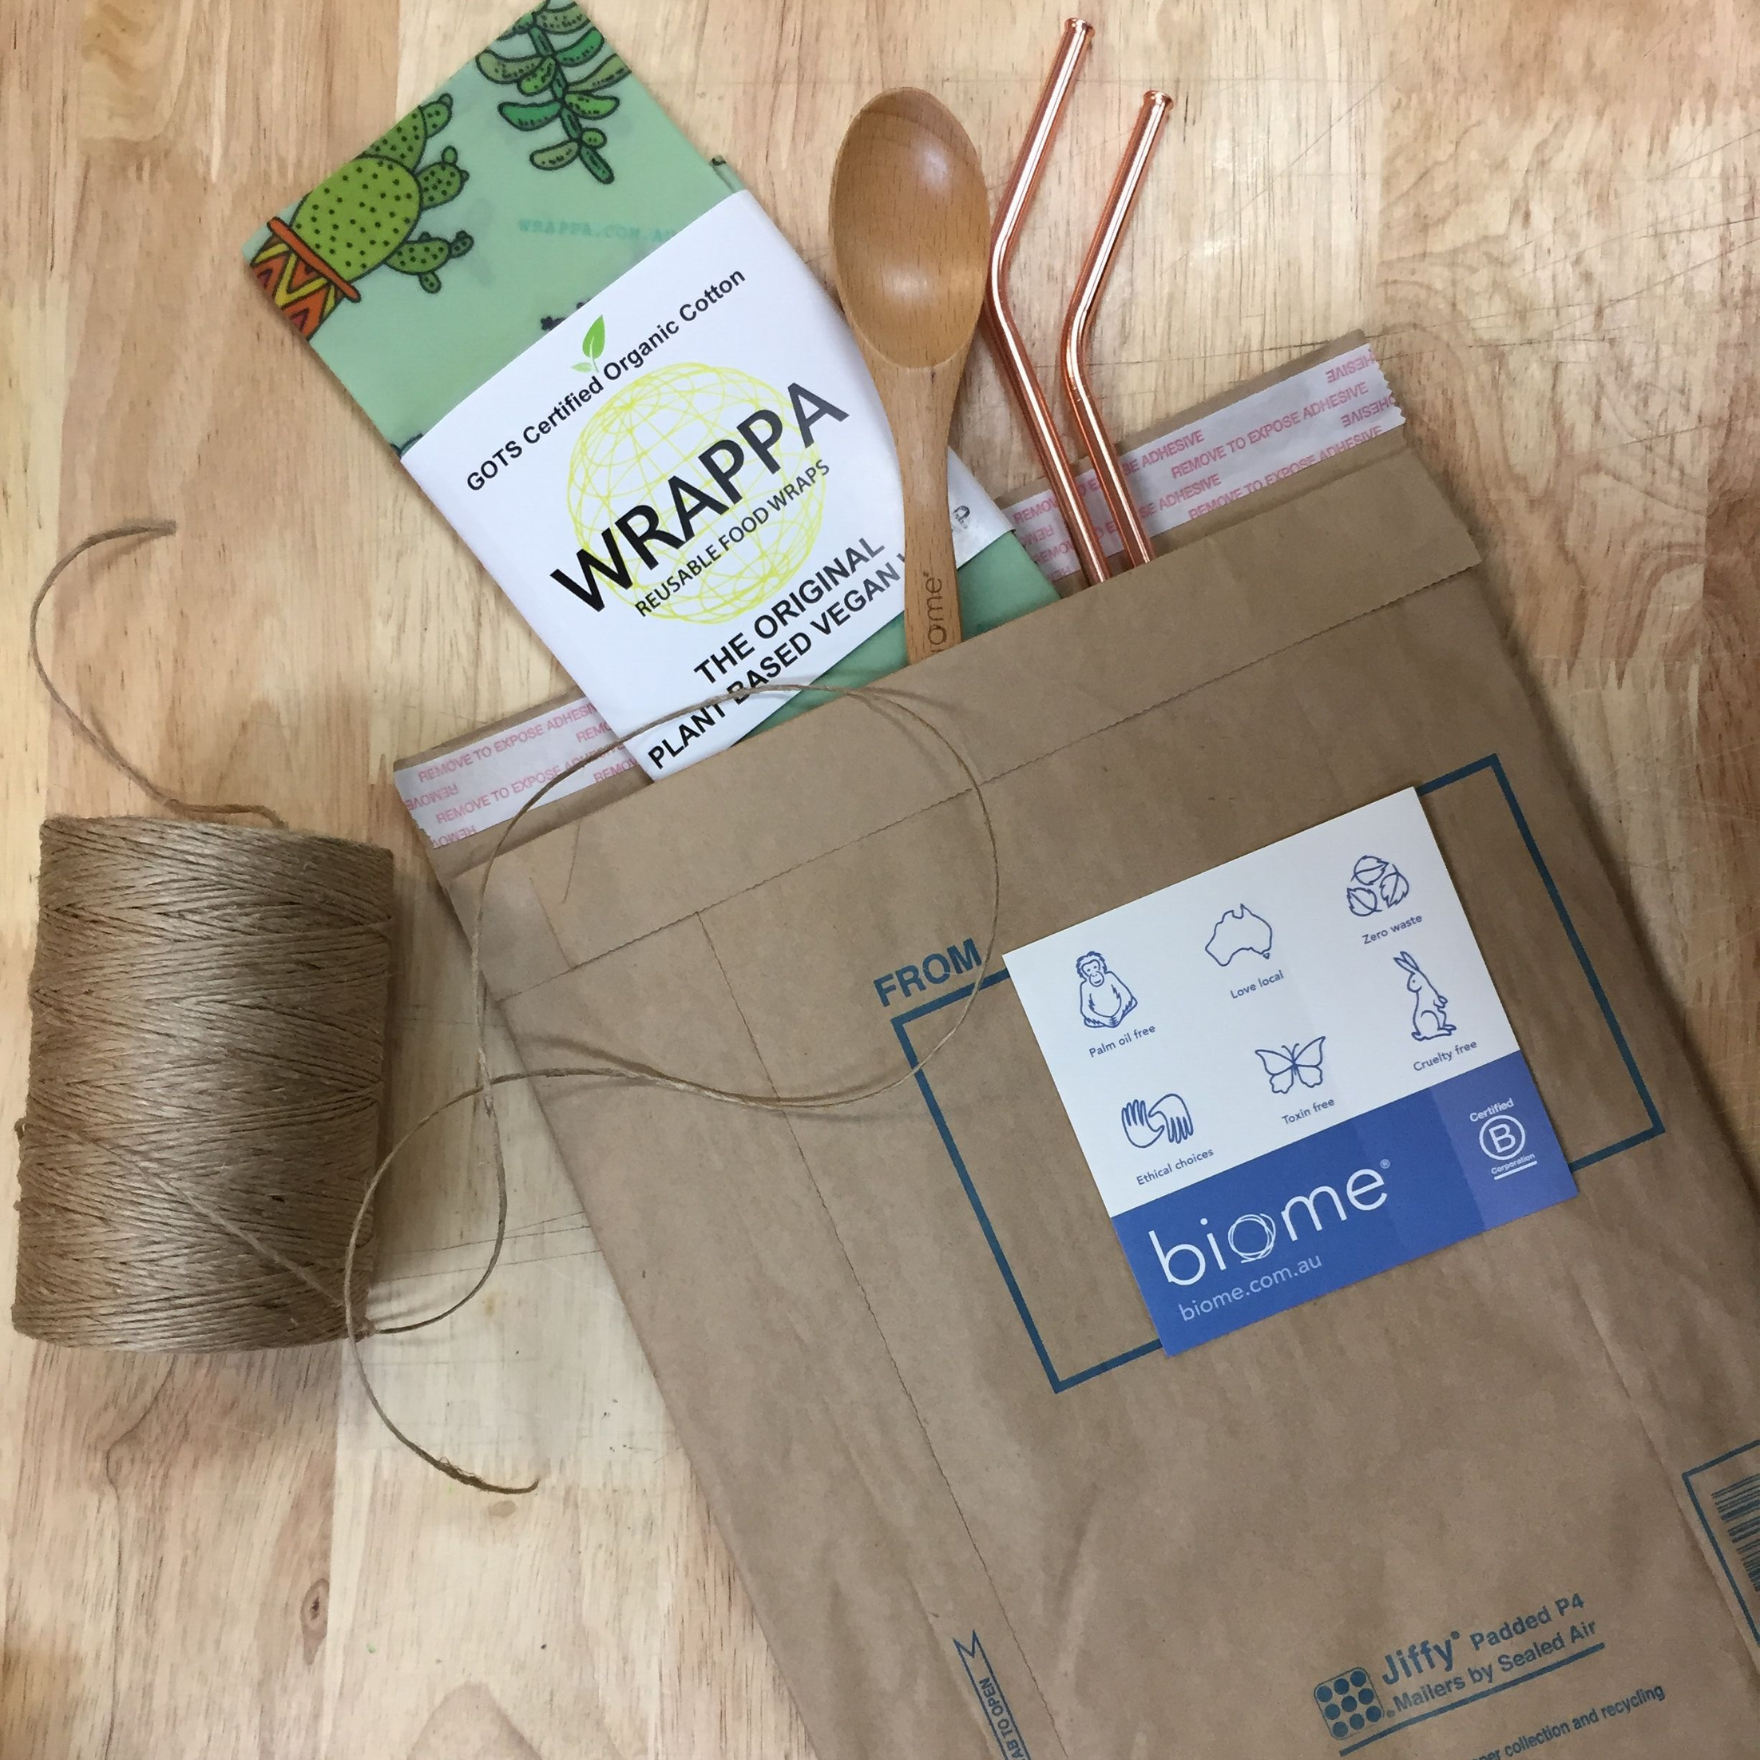 Biome Products in Jiffy Bag